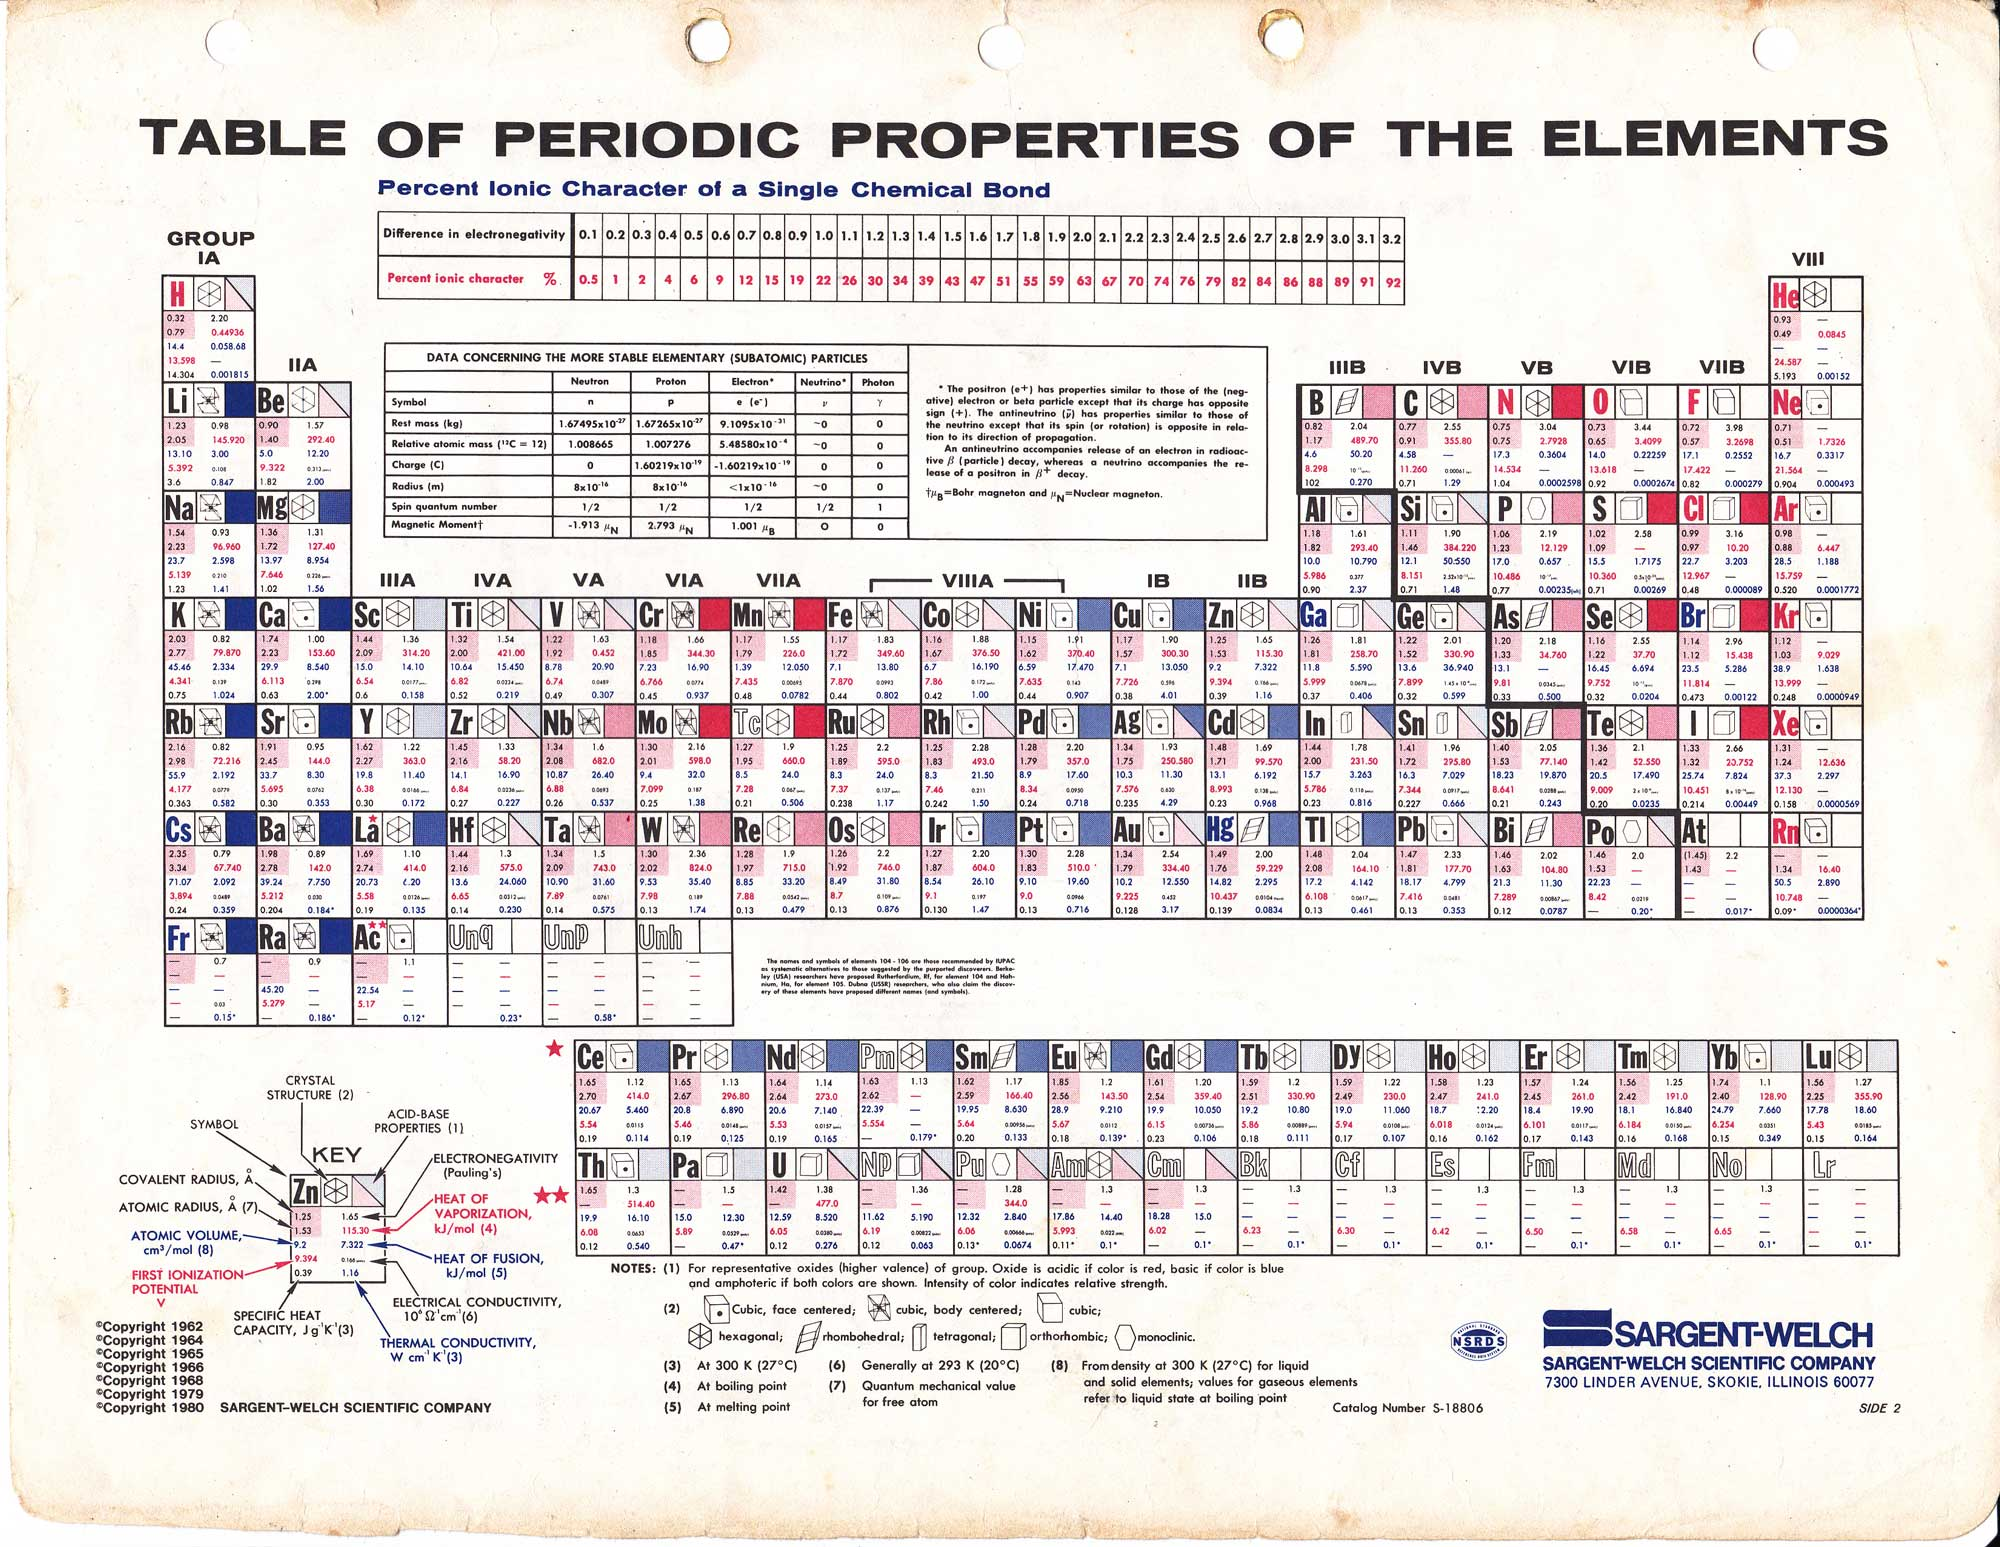 Periodic Table Of The Elements Table Of Periodic